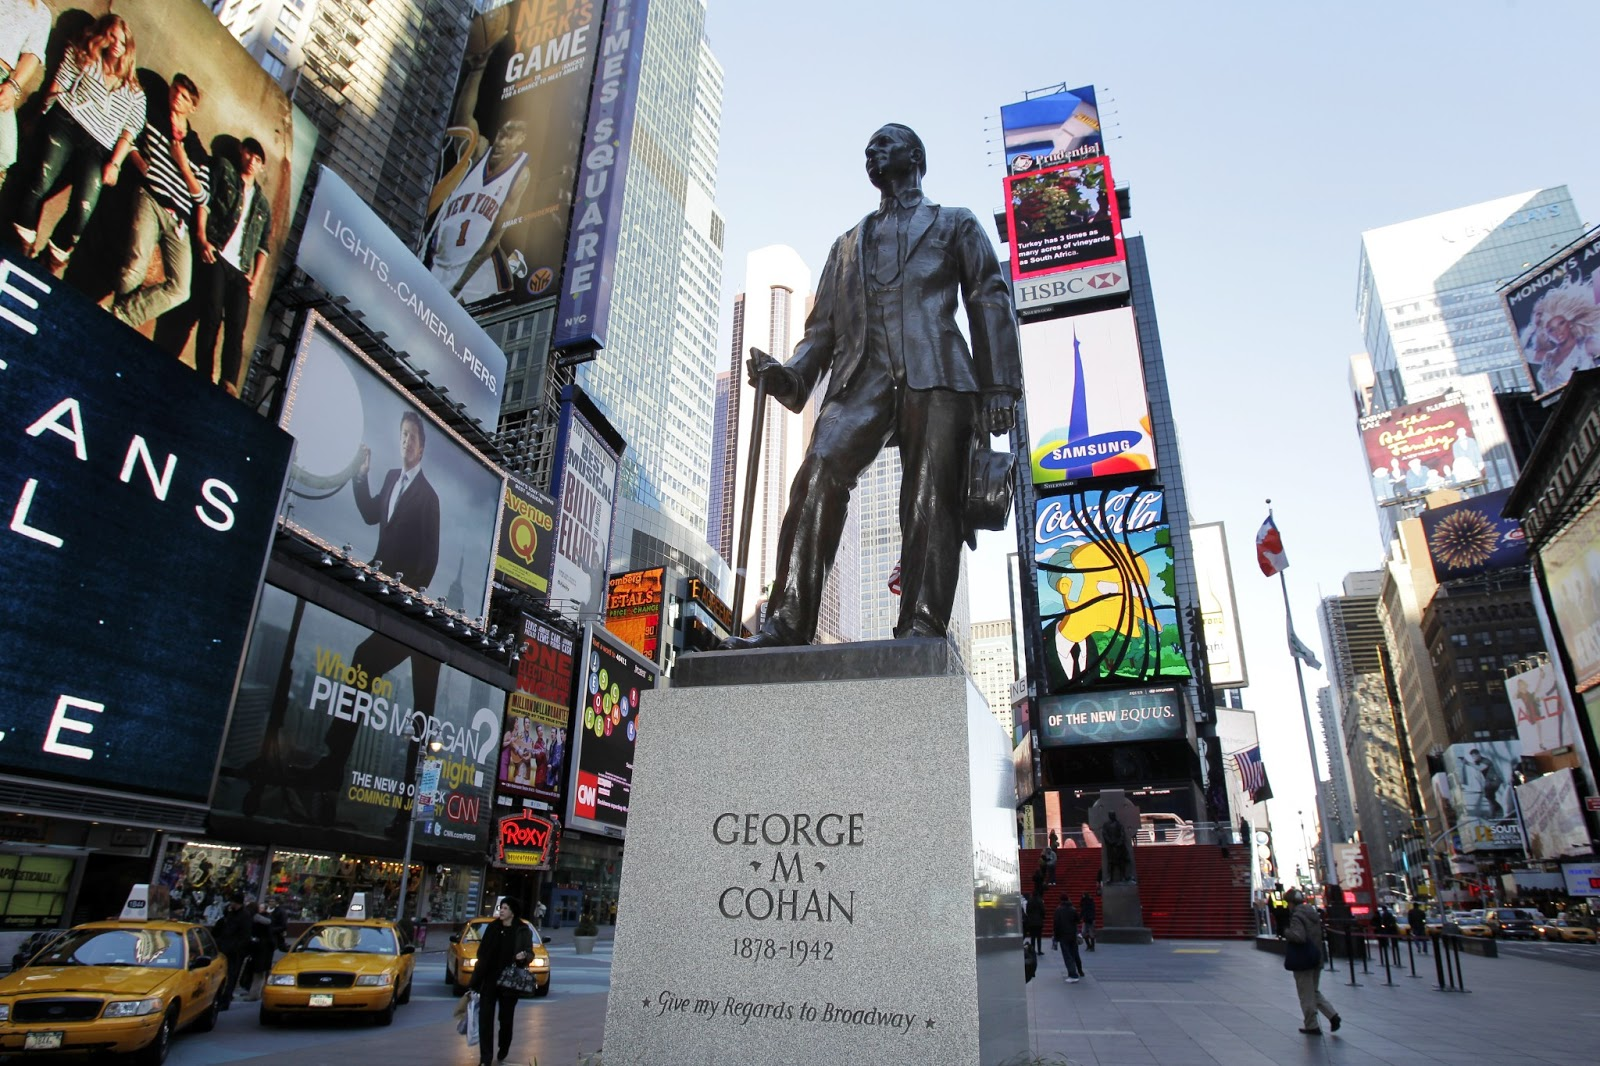 George M. Cohan statue at the crossroads of the world